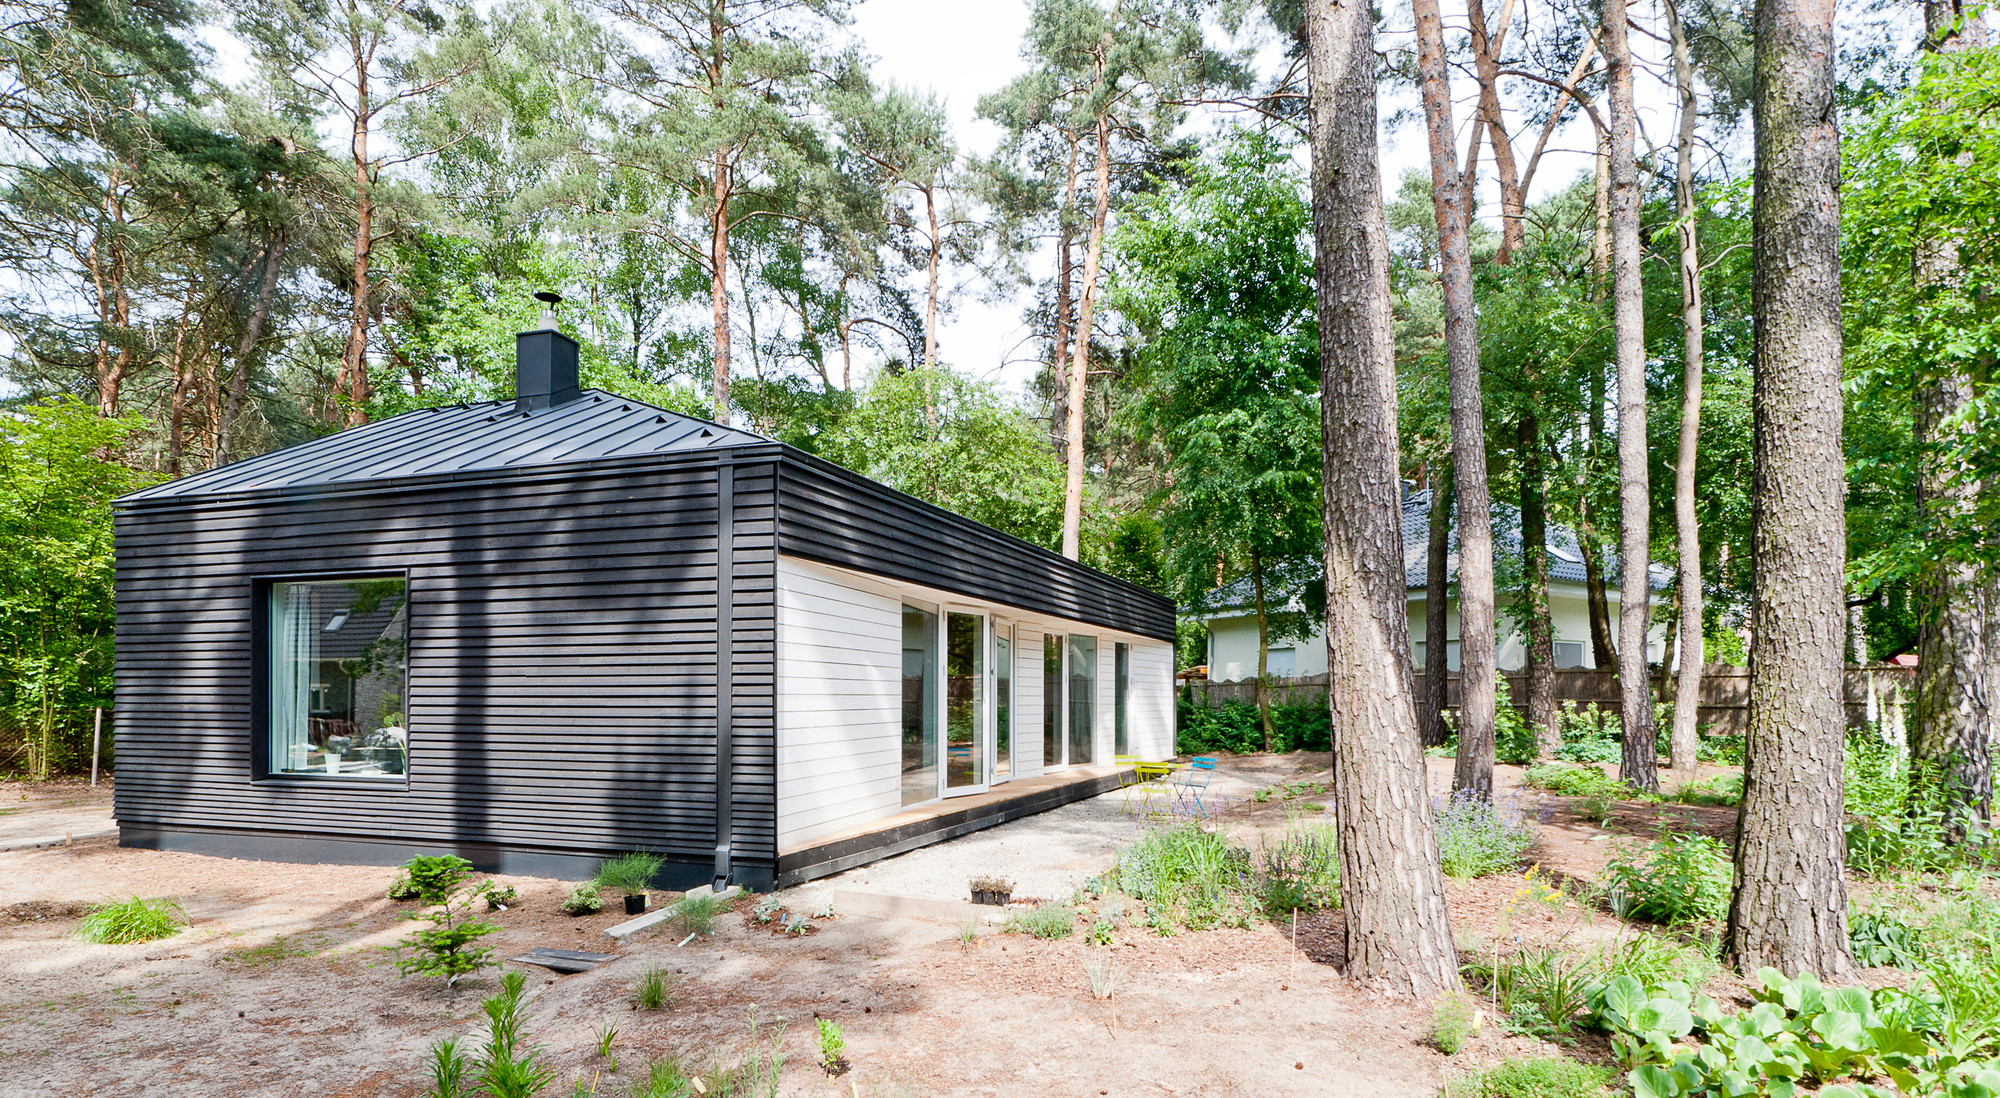 House in the Woods / Claim, © claim and G.Jankowski